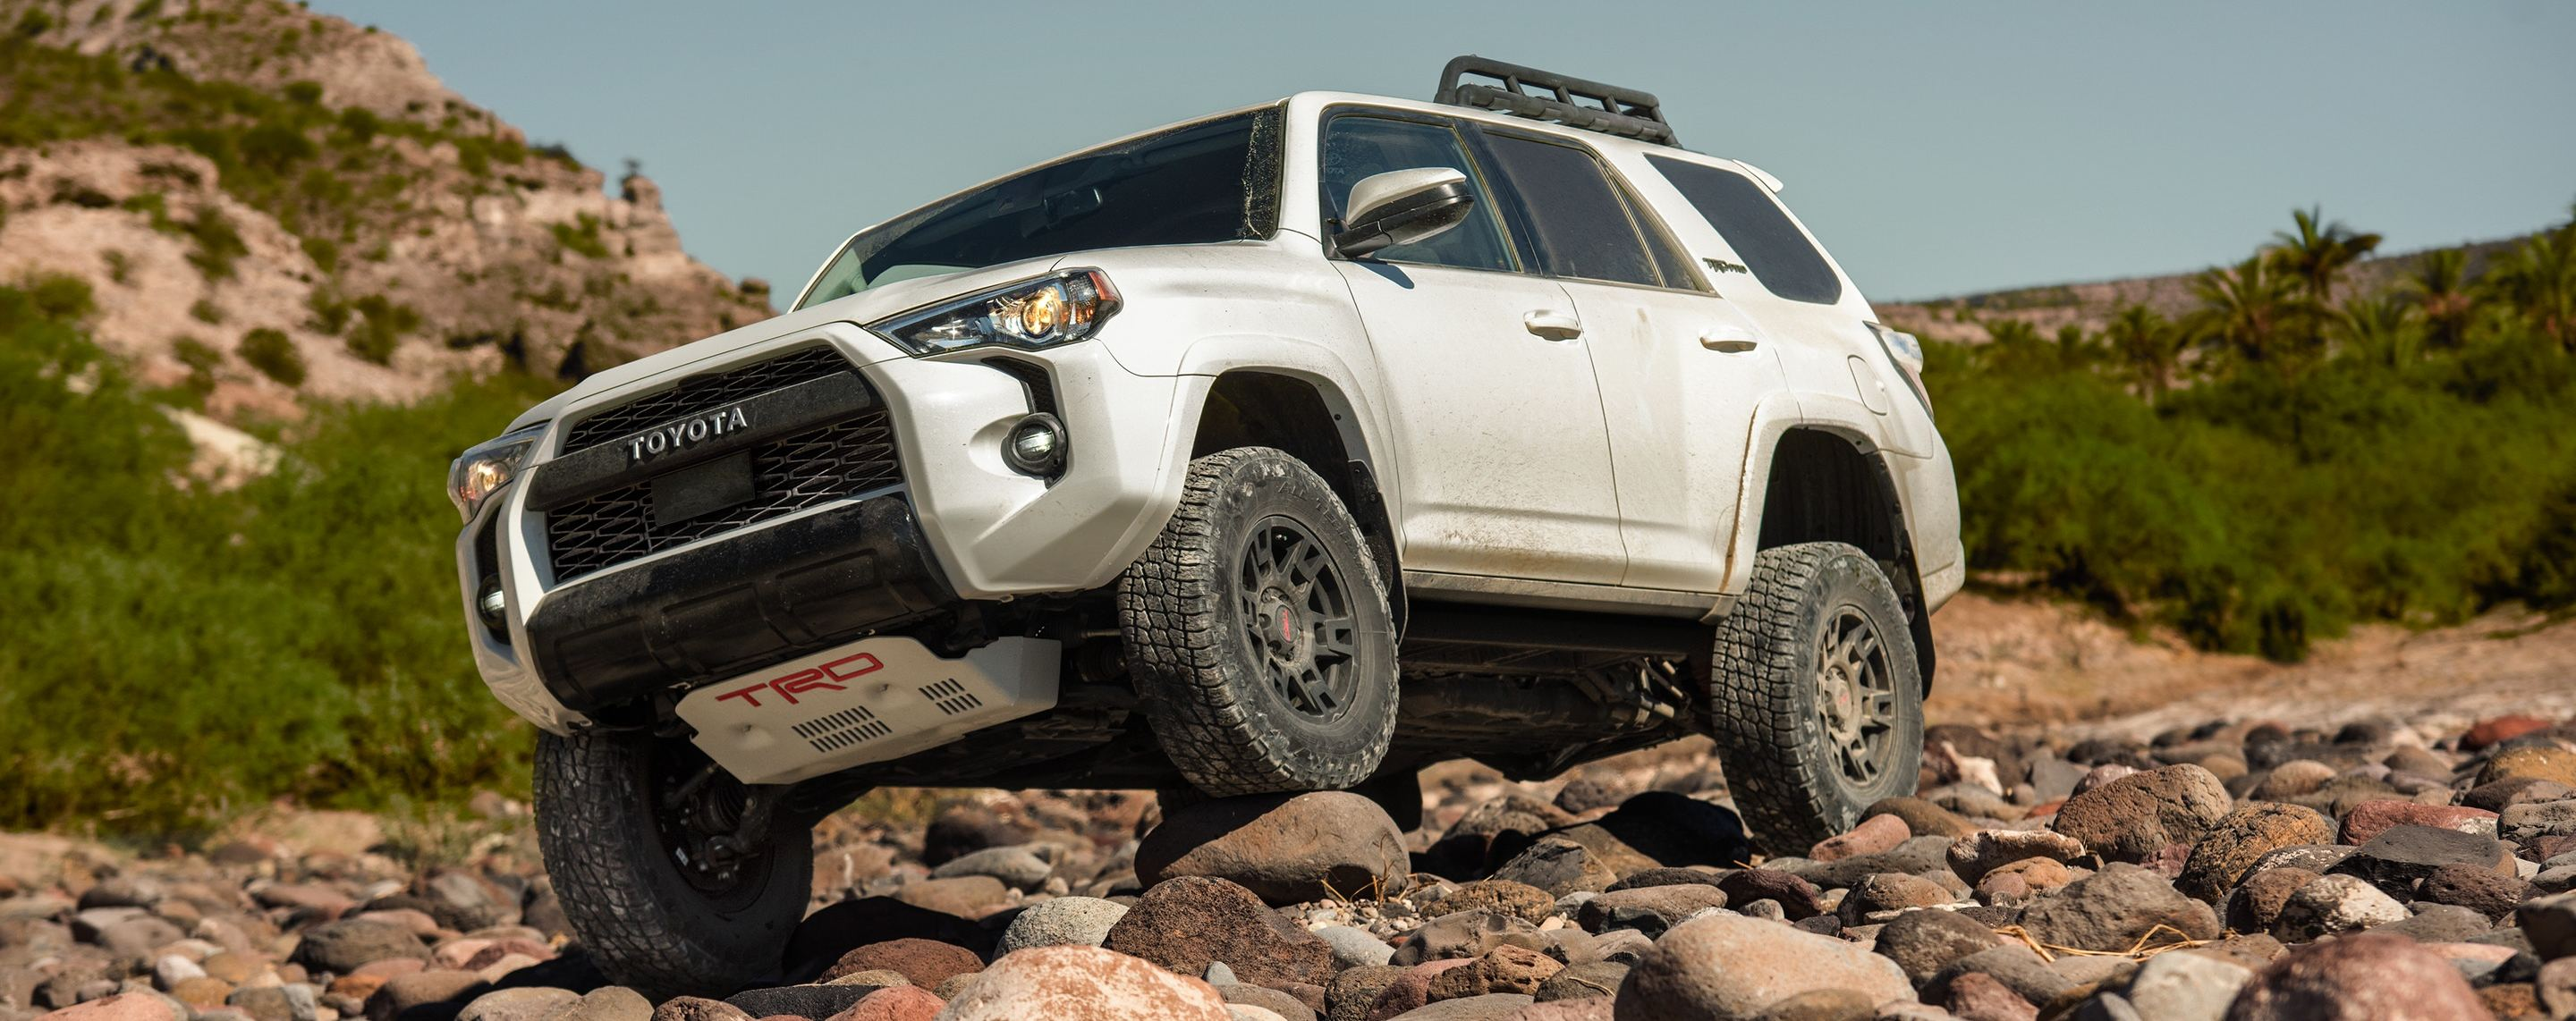 2020 Toyota 4Runner Financing in Rockford, IL